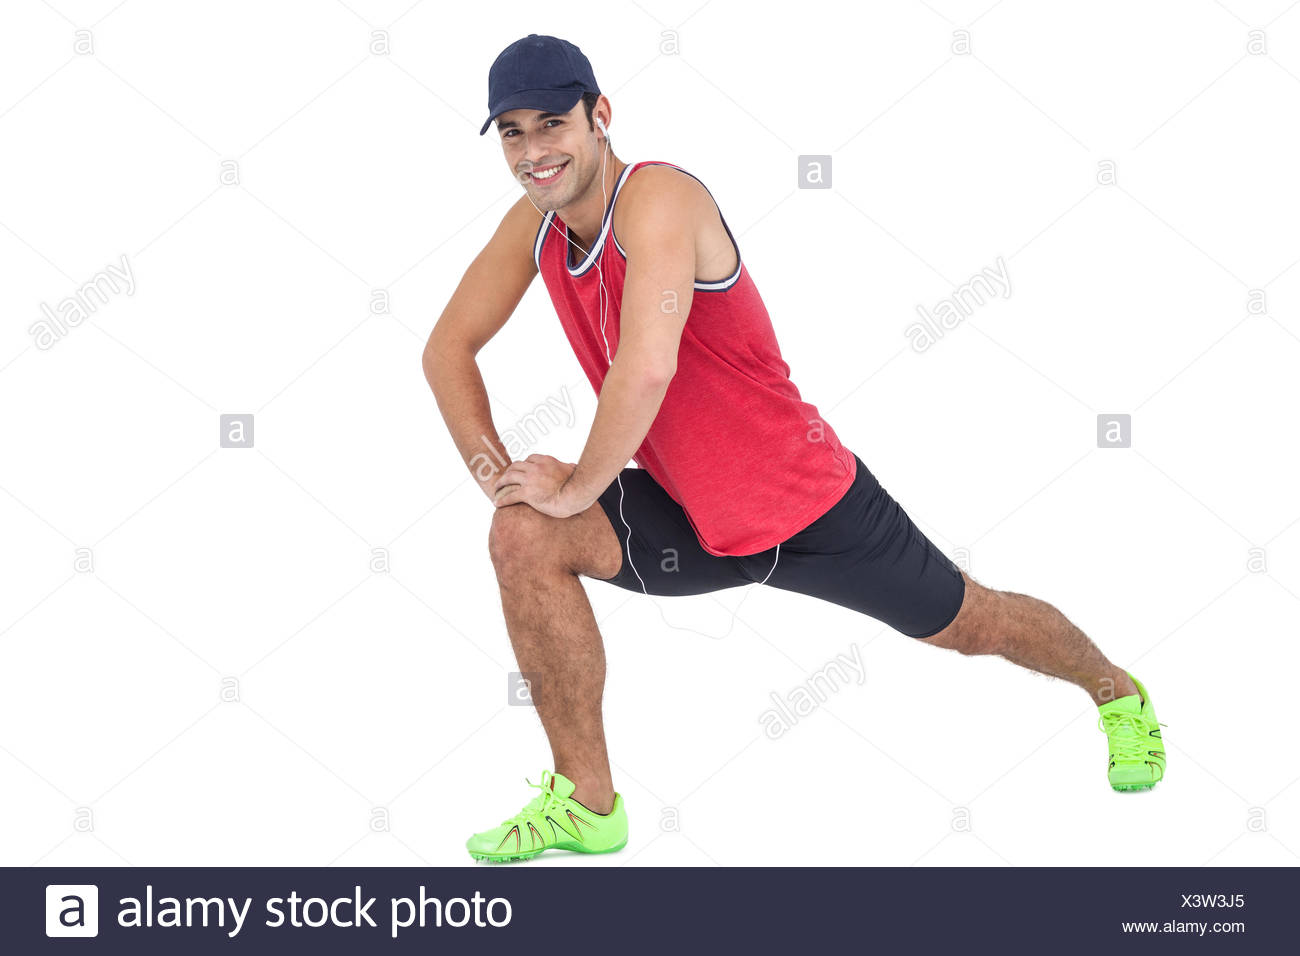 Portrait of male athlete doing stretching exercise - Stock Image